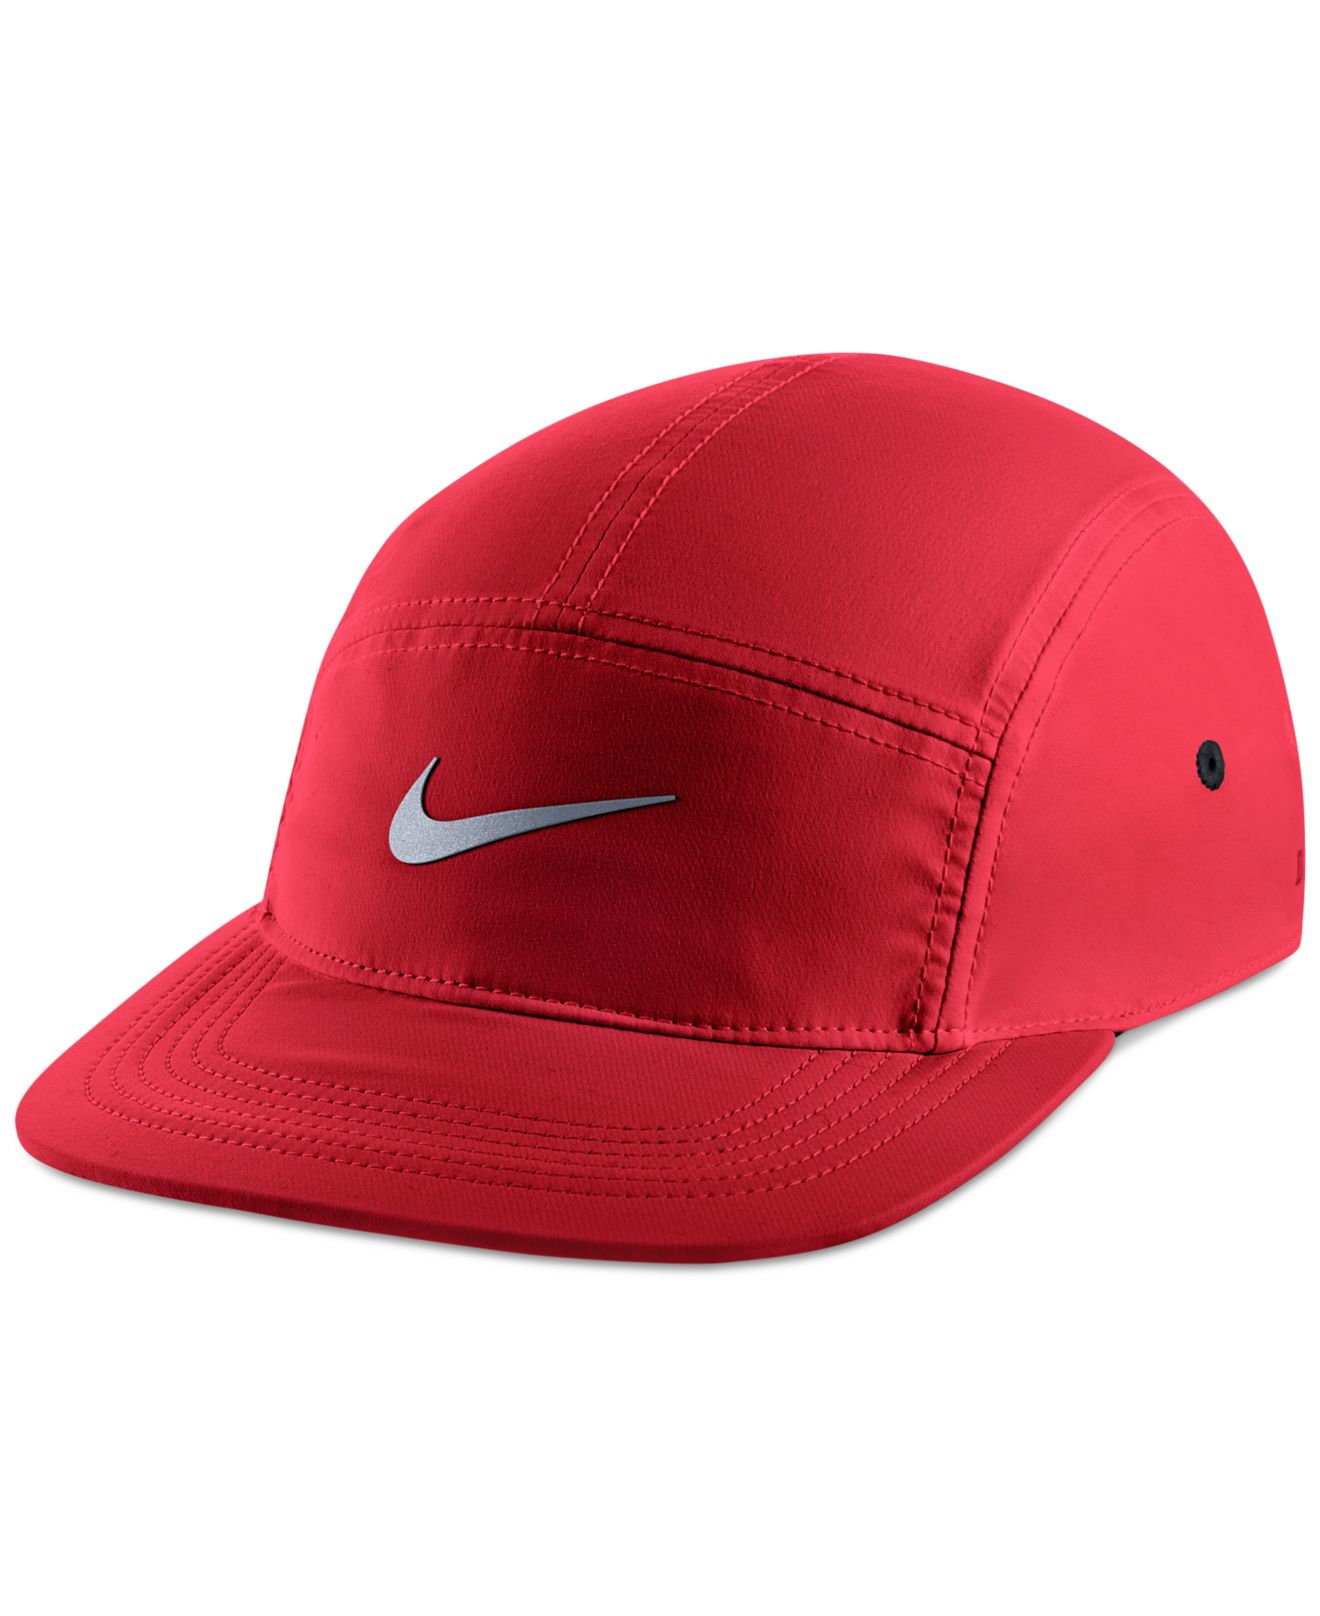 75d8e382705 ... coupon code for lyst nike run aw84 hat in red for men b8a09 edf21